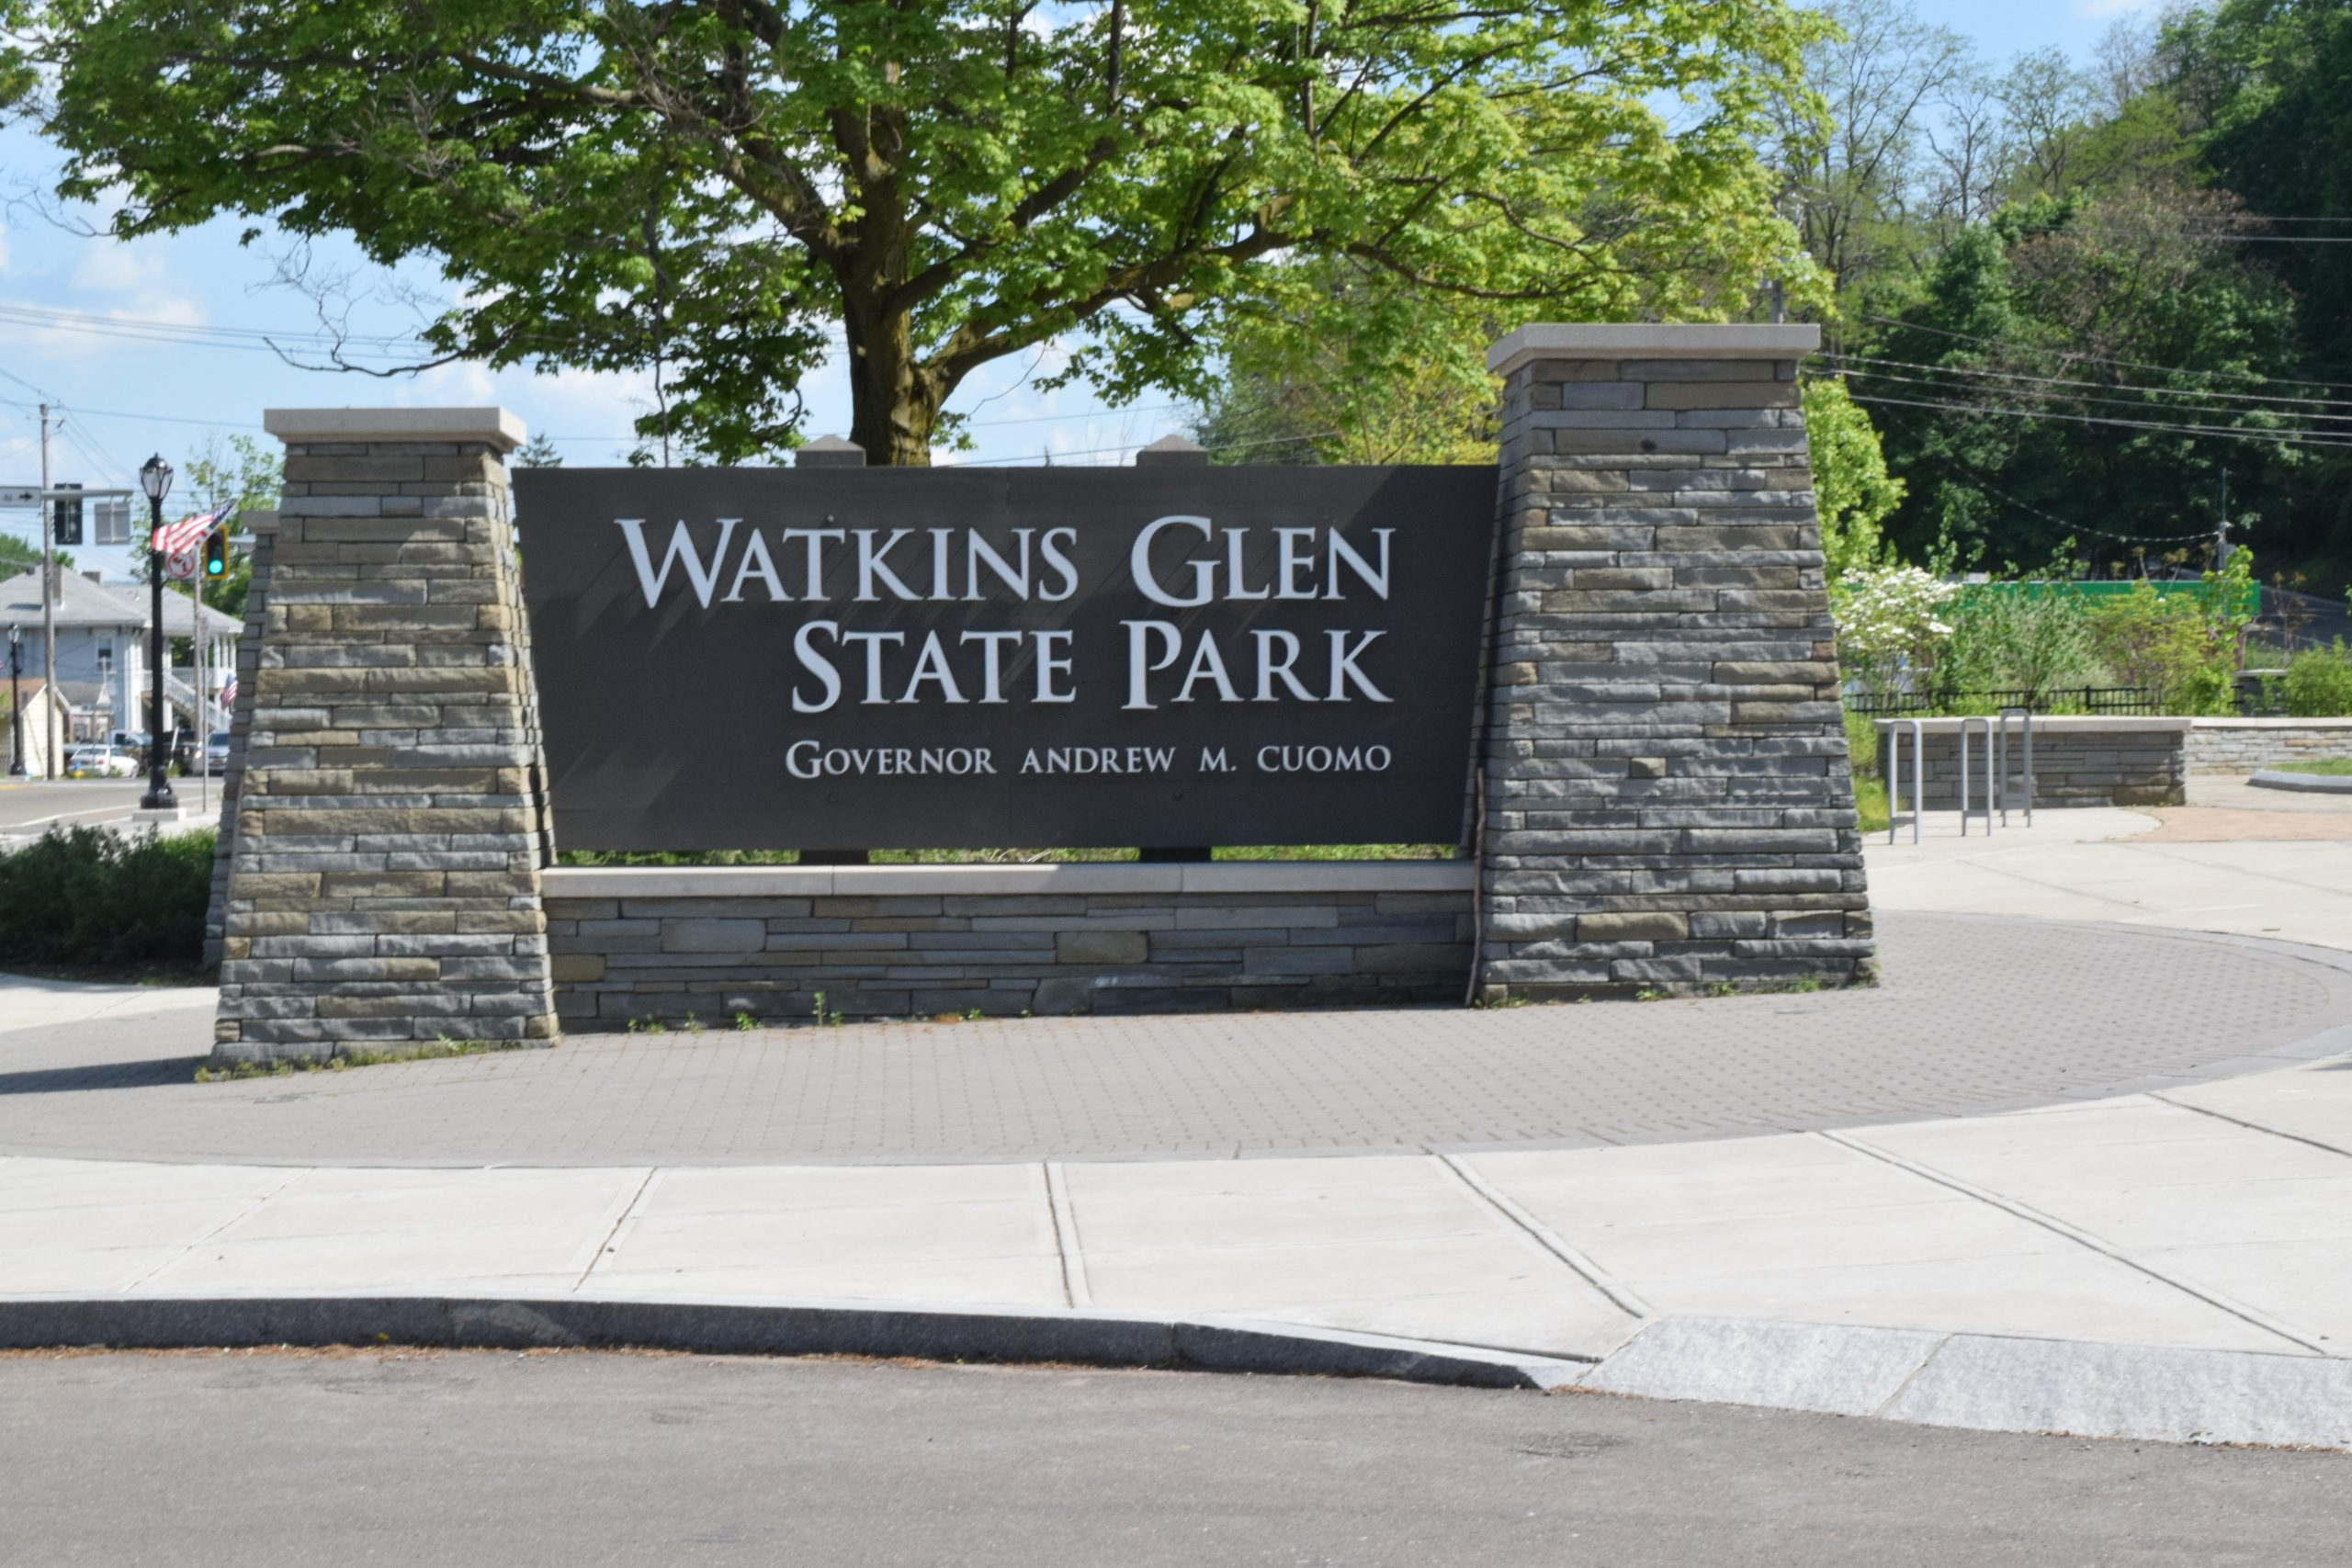 Watkins Glen Main Entrance